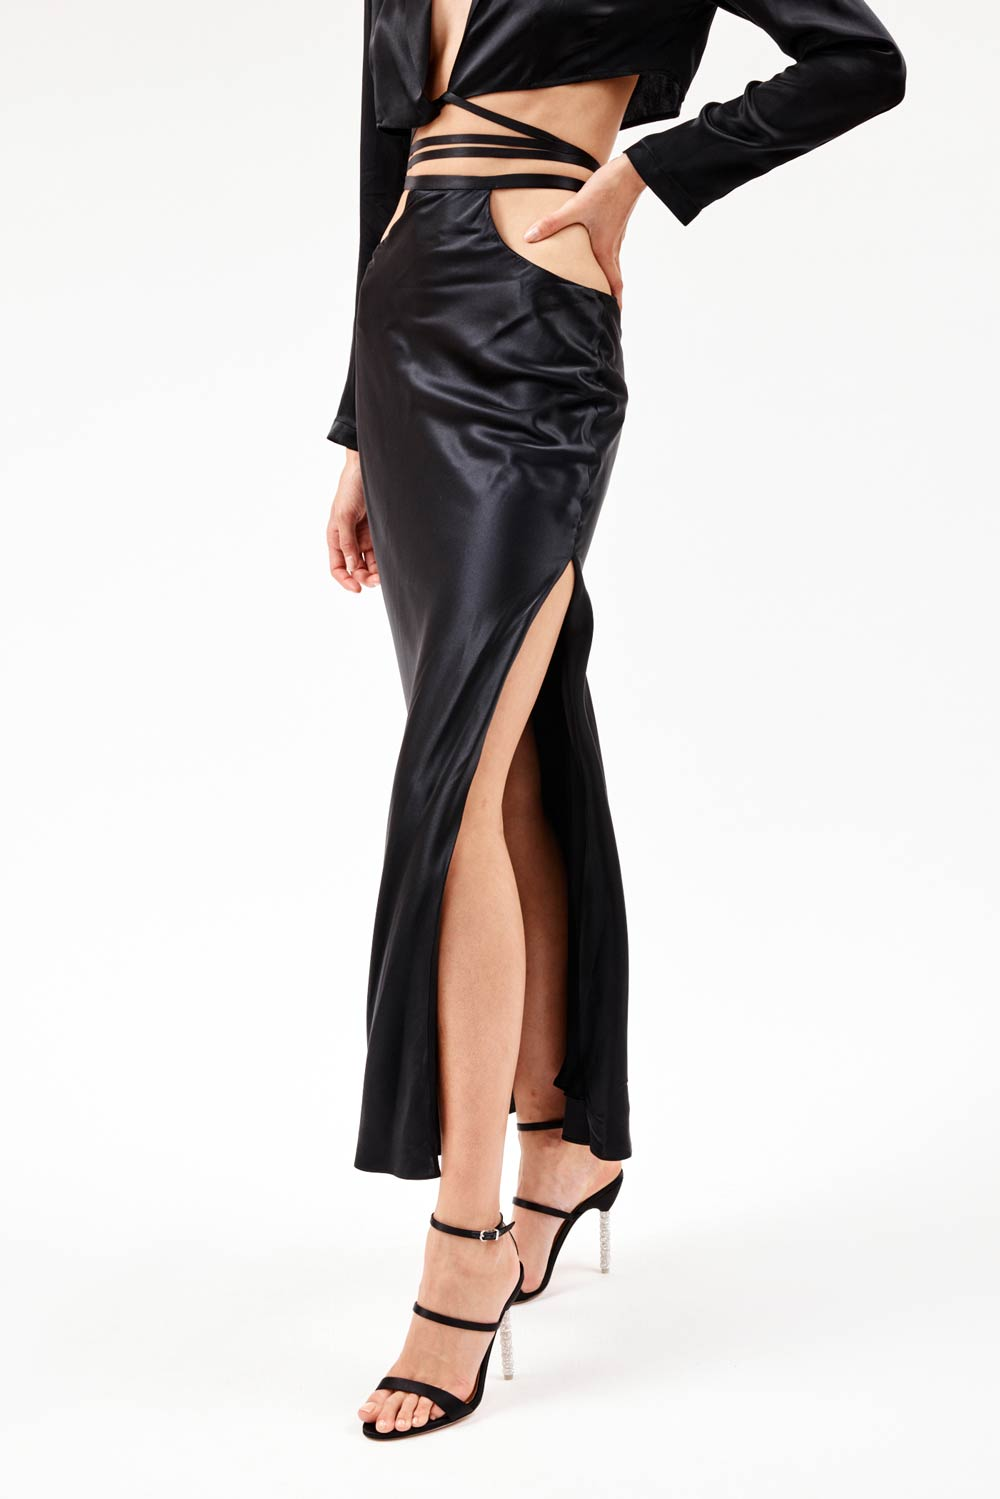 Cut out black silk skirt